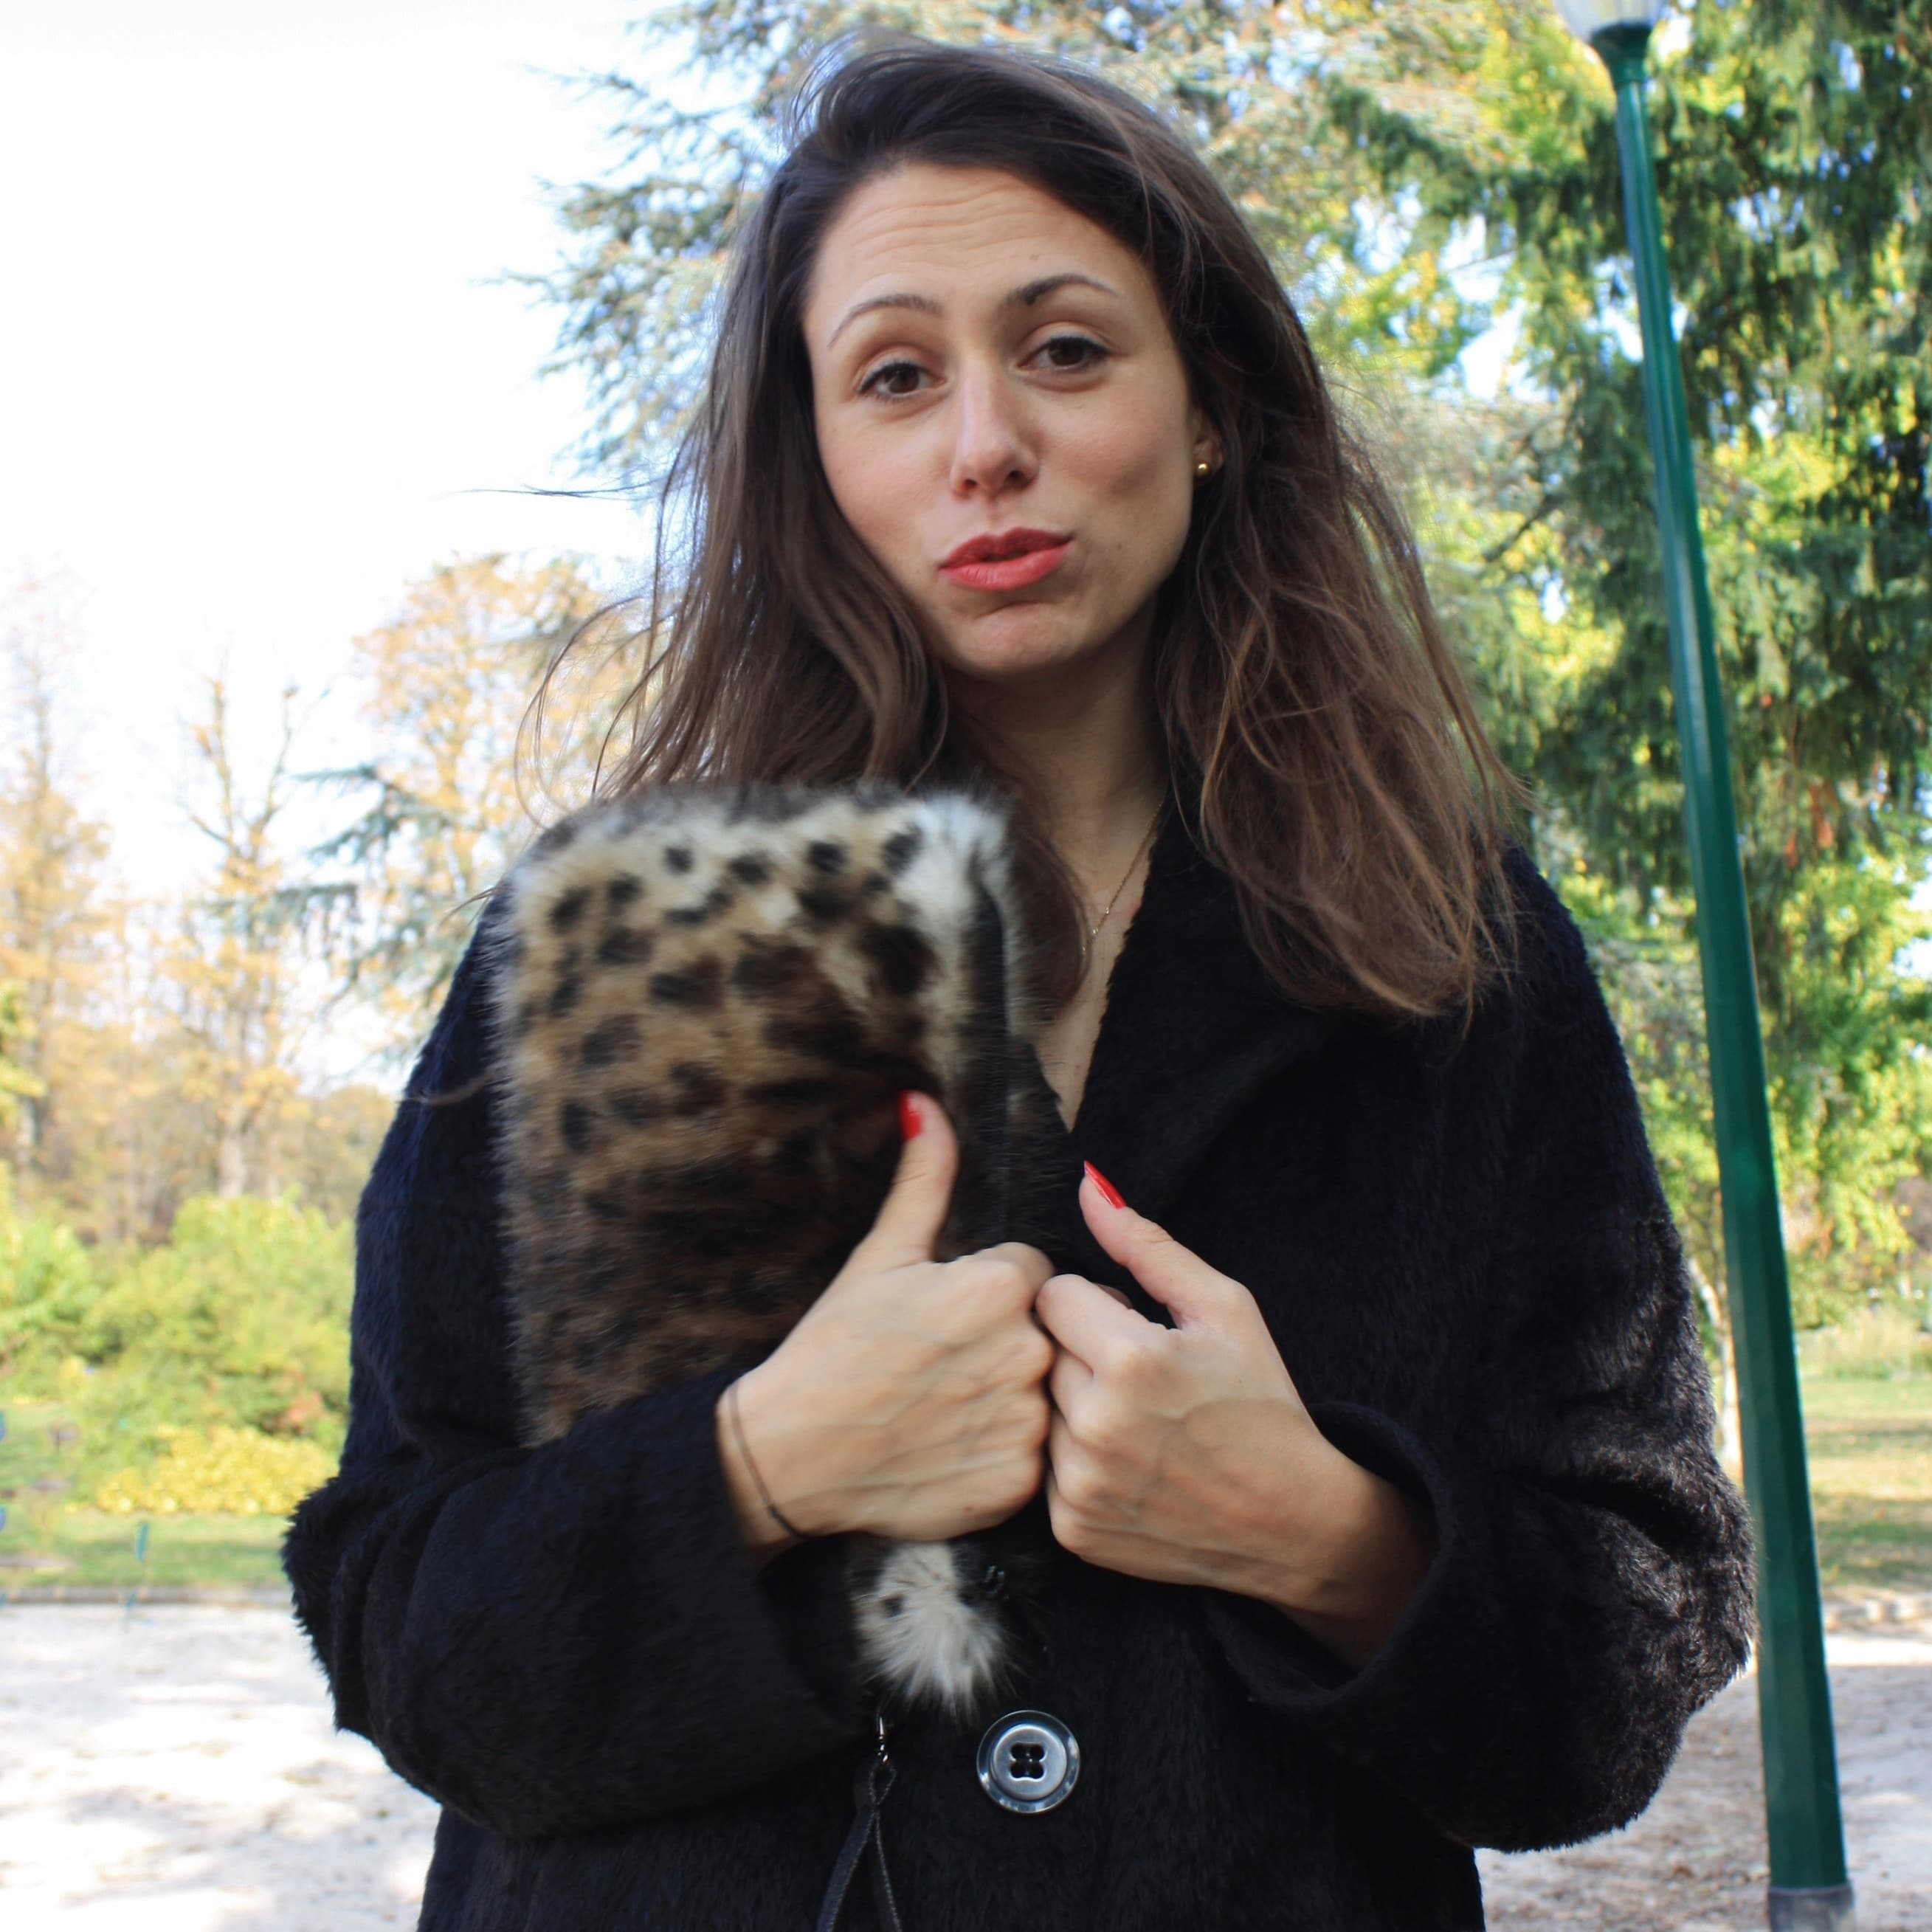 Leopard faux fur clutch bag with removable wrislet.